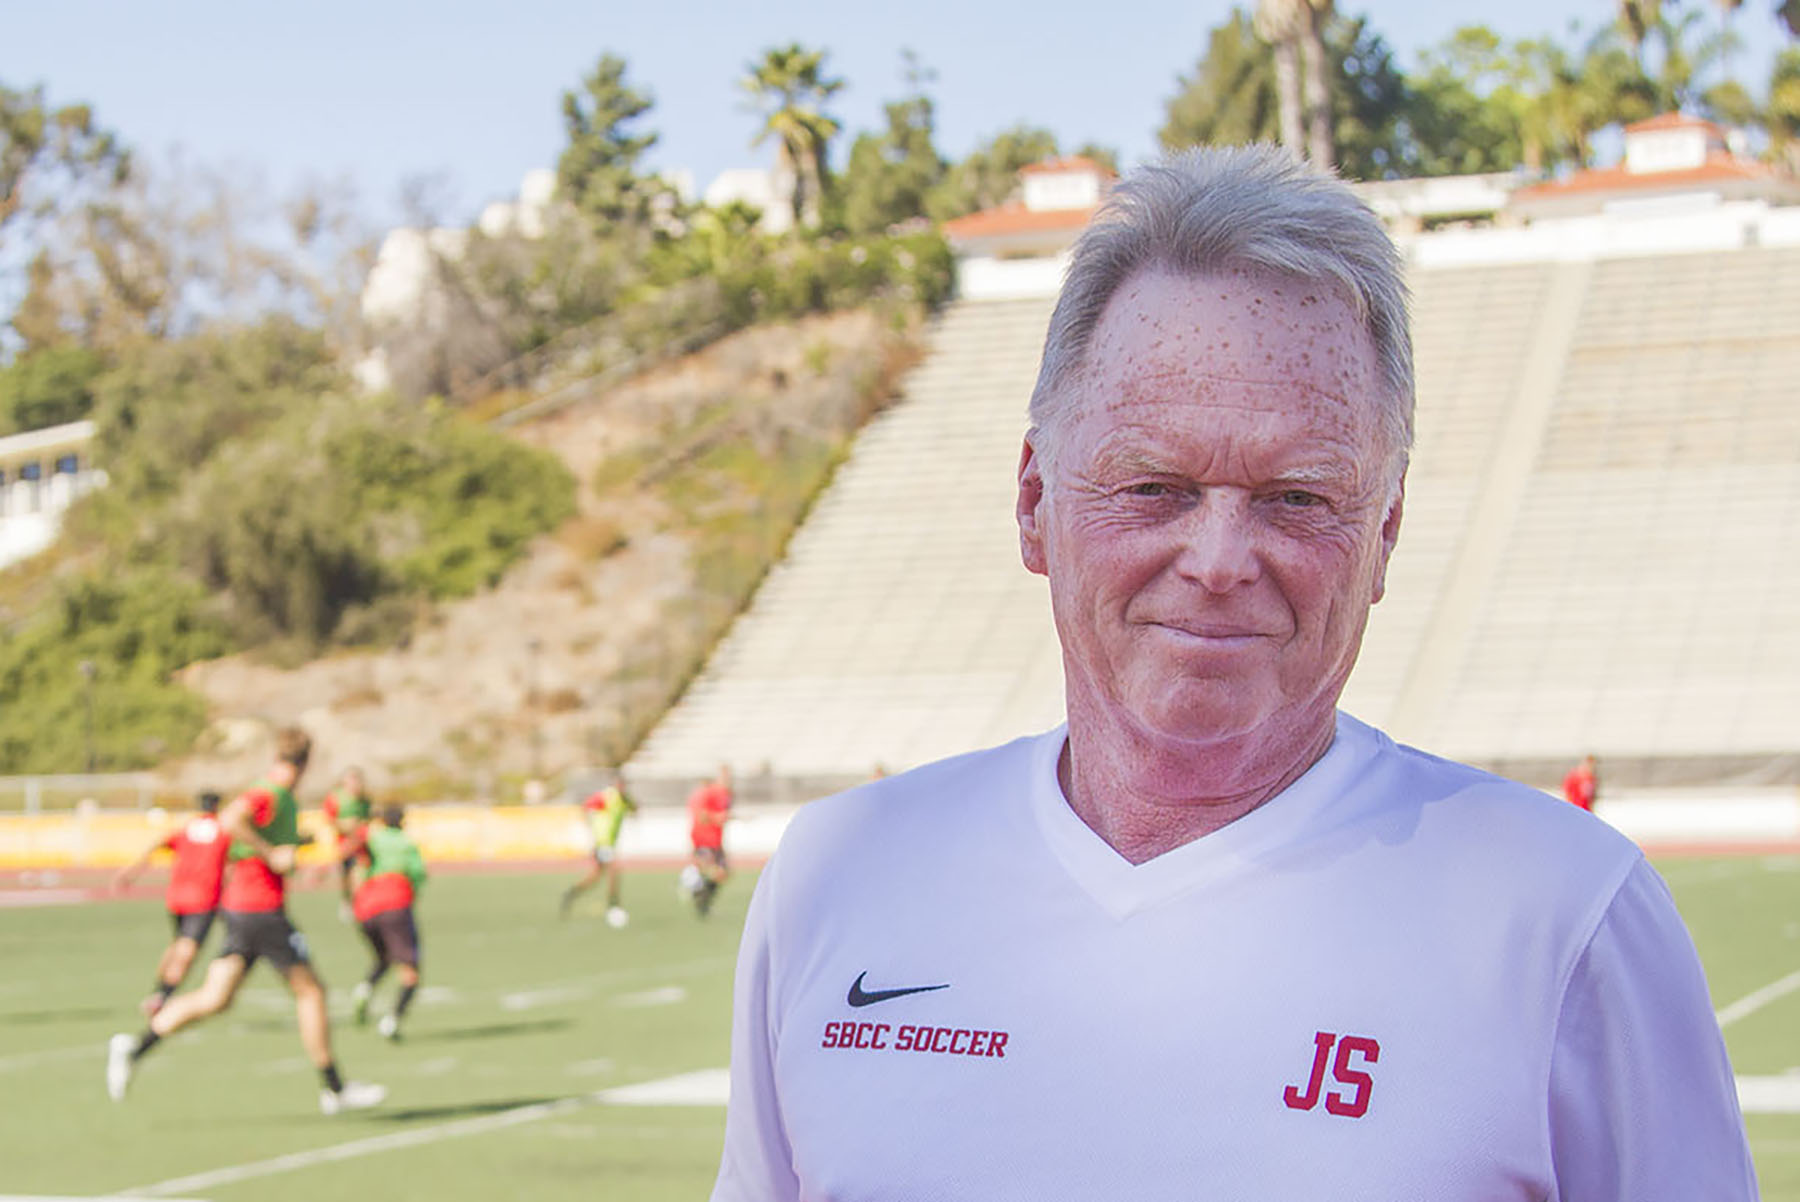 John Sisterson, City College soccer head coach, during a men's soccer practice on Friday, Oct. 21, at La Playa Stadium. Sisterson became the winningest men's soccer coach in City College history by leading the soccer team to its 121 win in his 10th season.